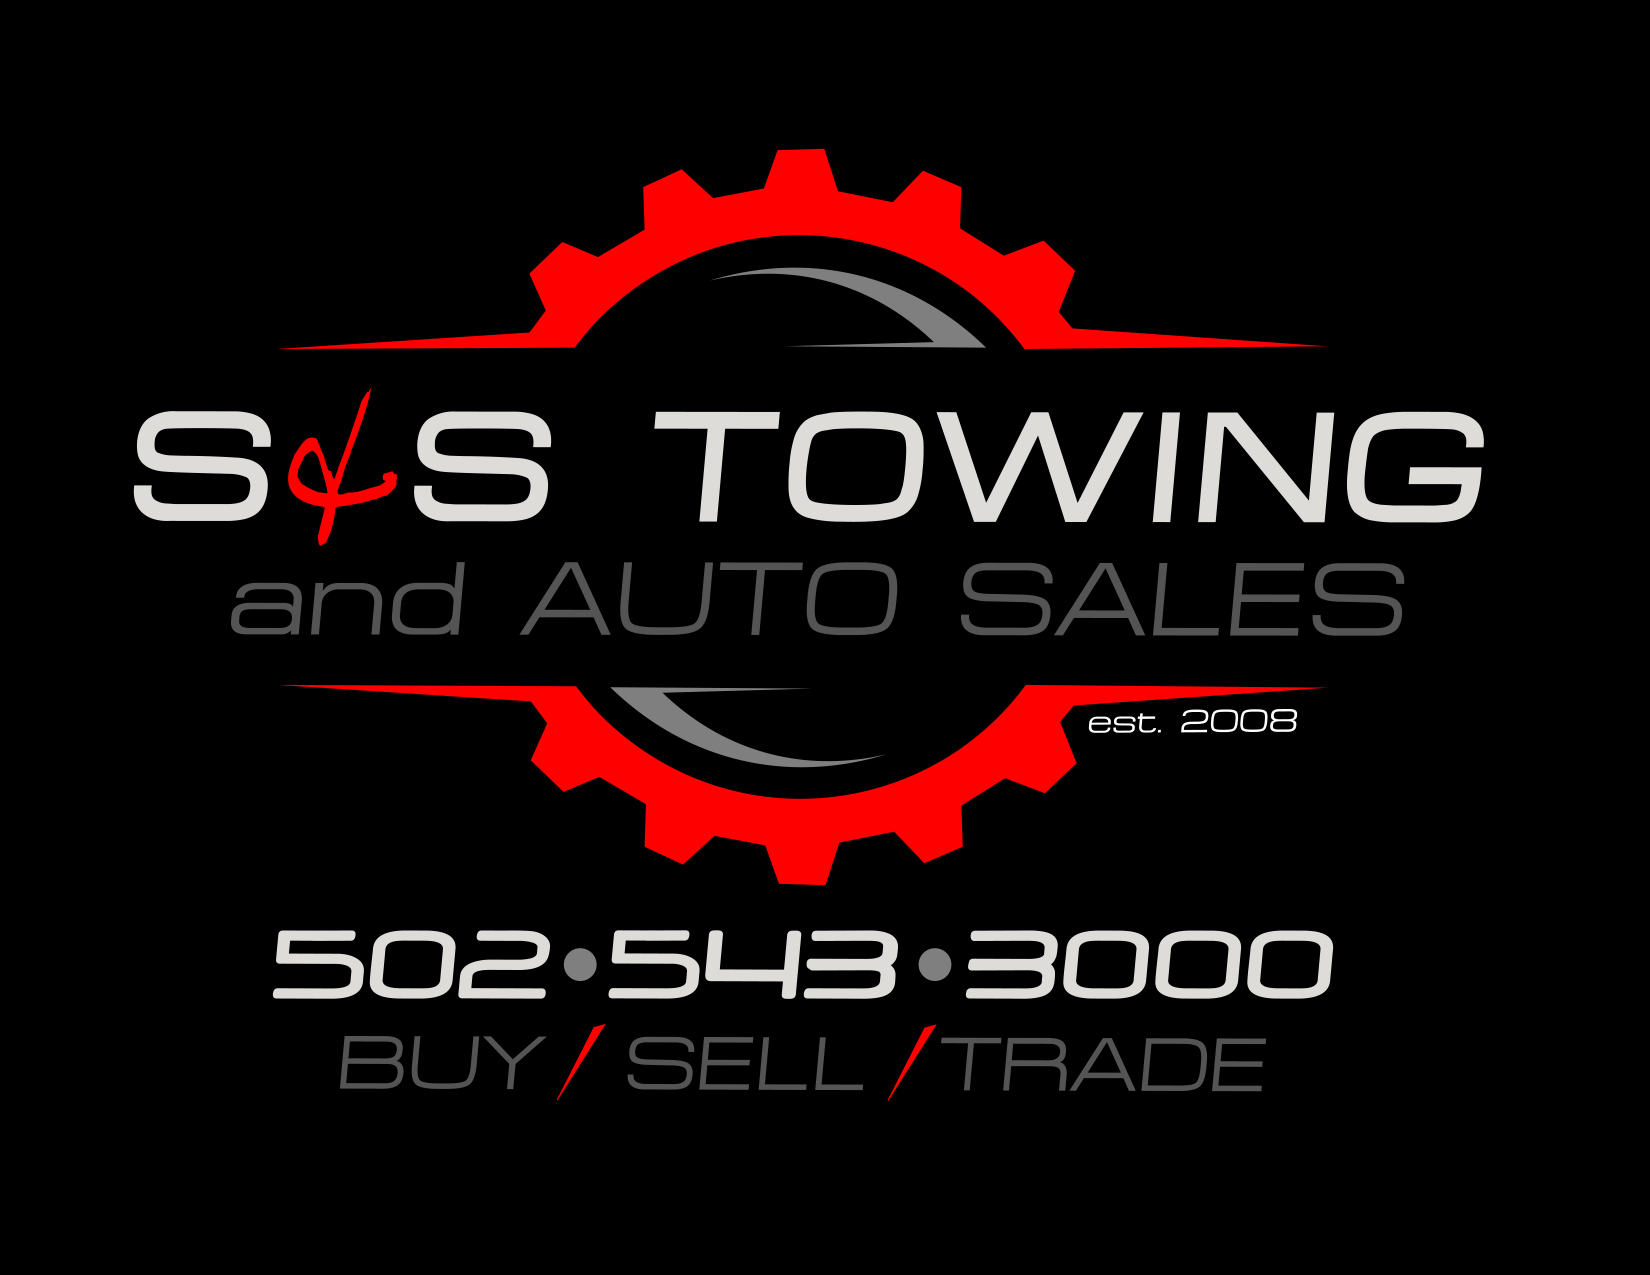 S&S Towing And Auto Sales Logo